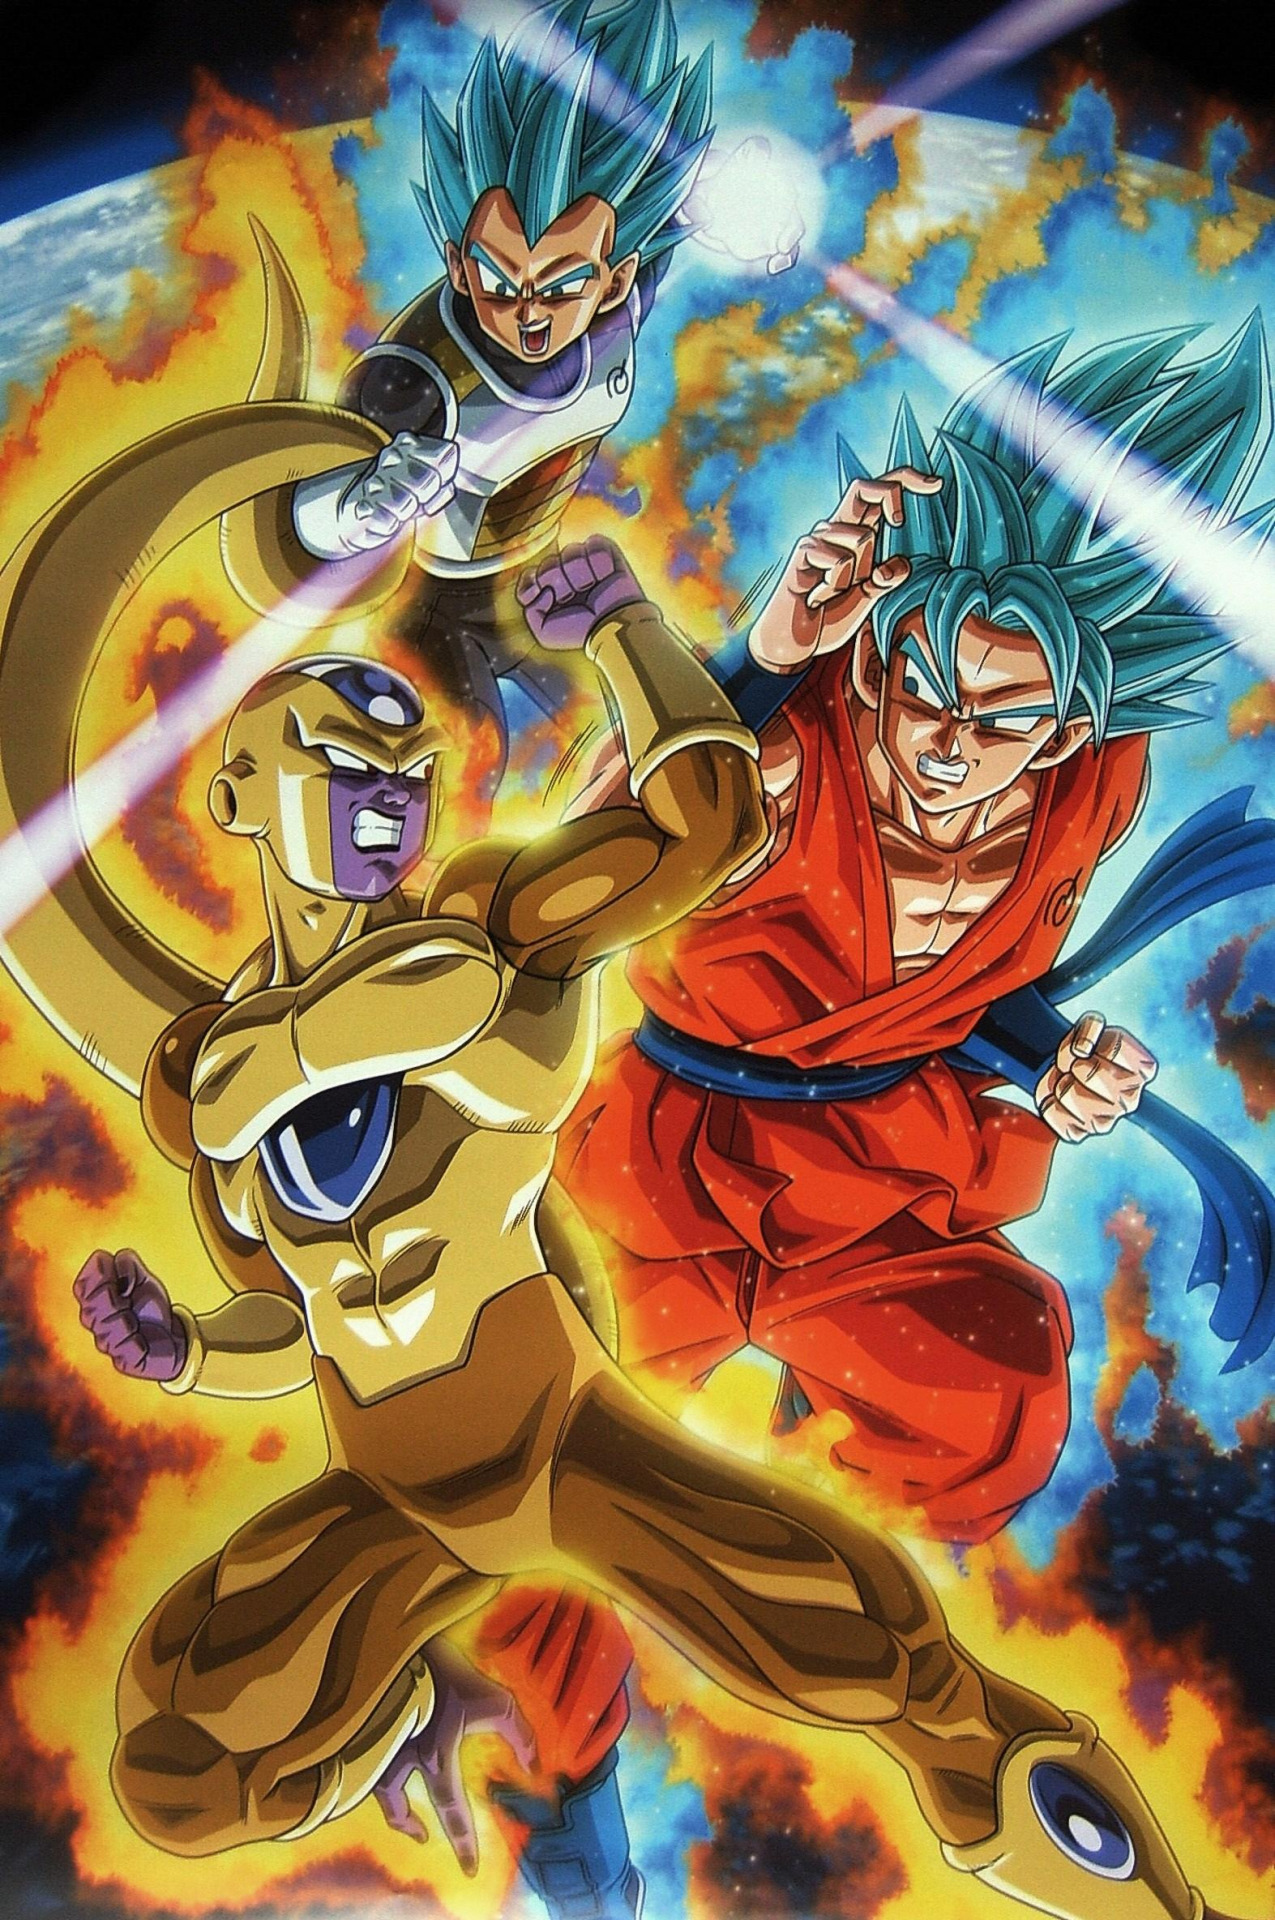 Image - Goku and Vegeta vs Frieza.jpg | Dragon Ball Wiki ...